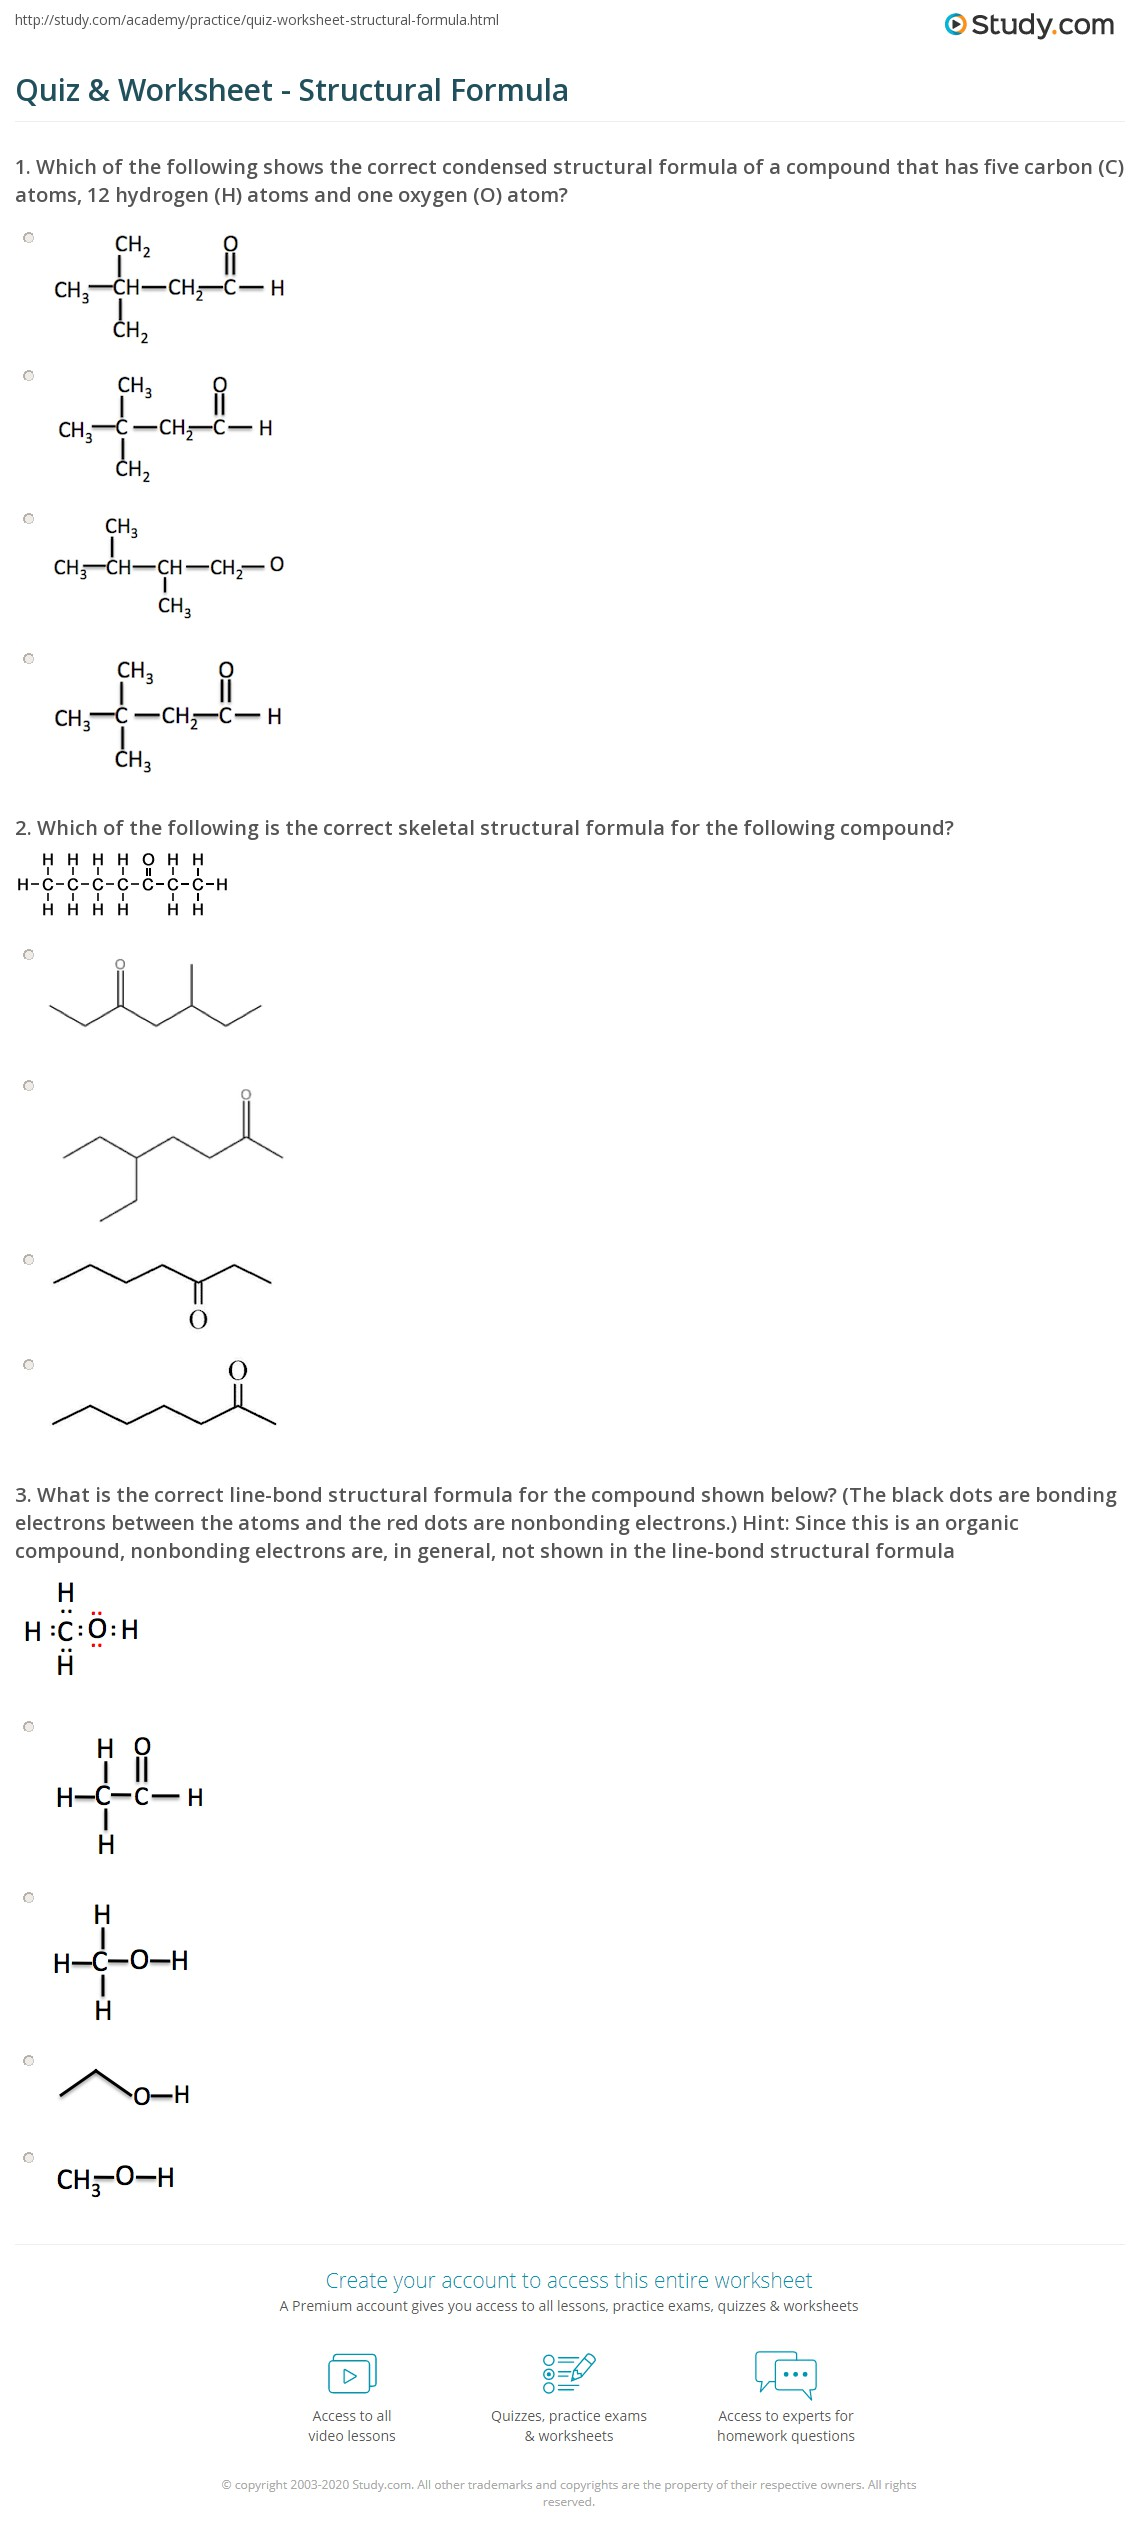 hight resolution of Quiz \u0026 Worksheet - Structural Formula   Study.com